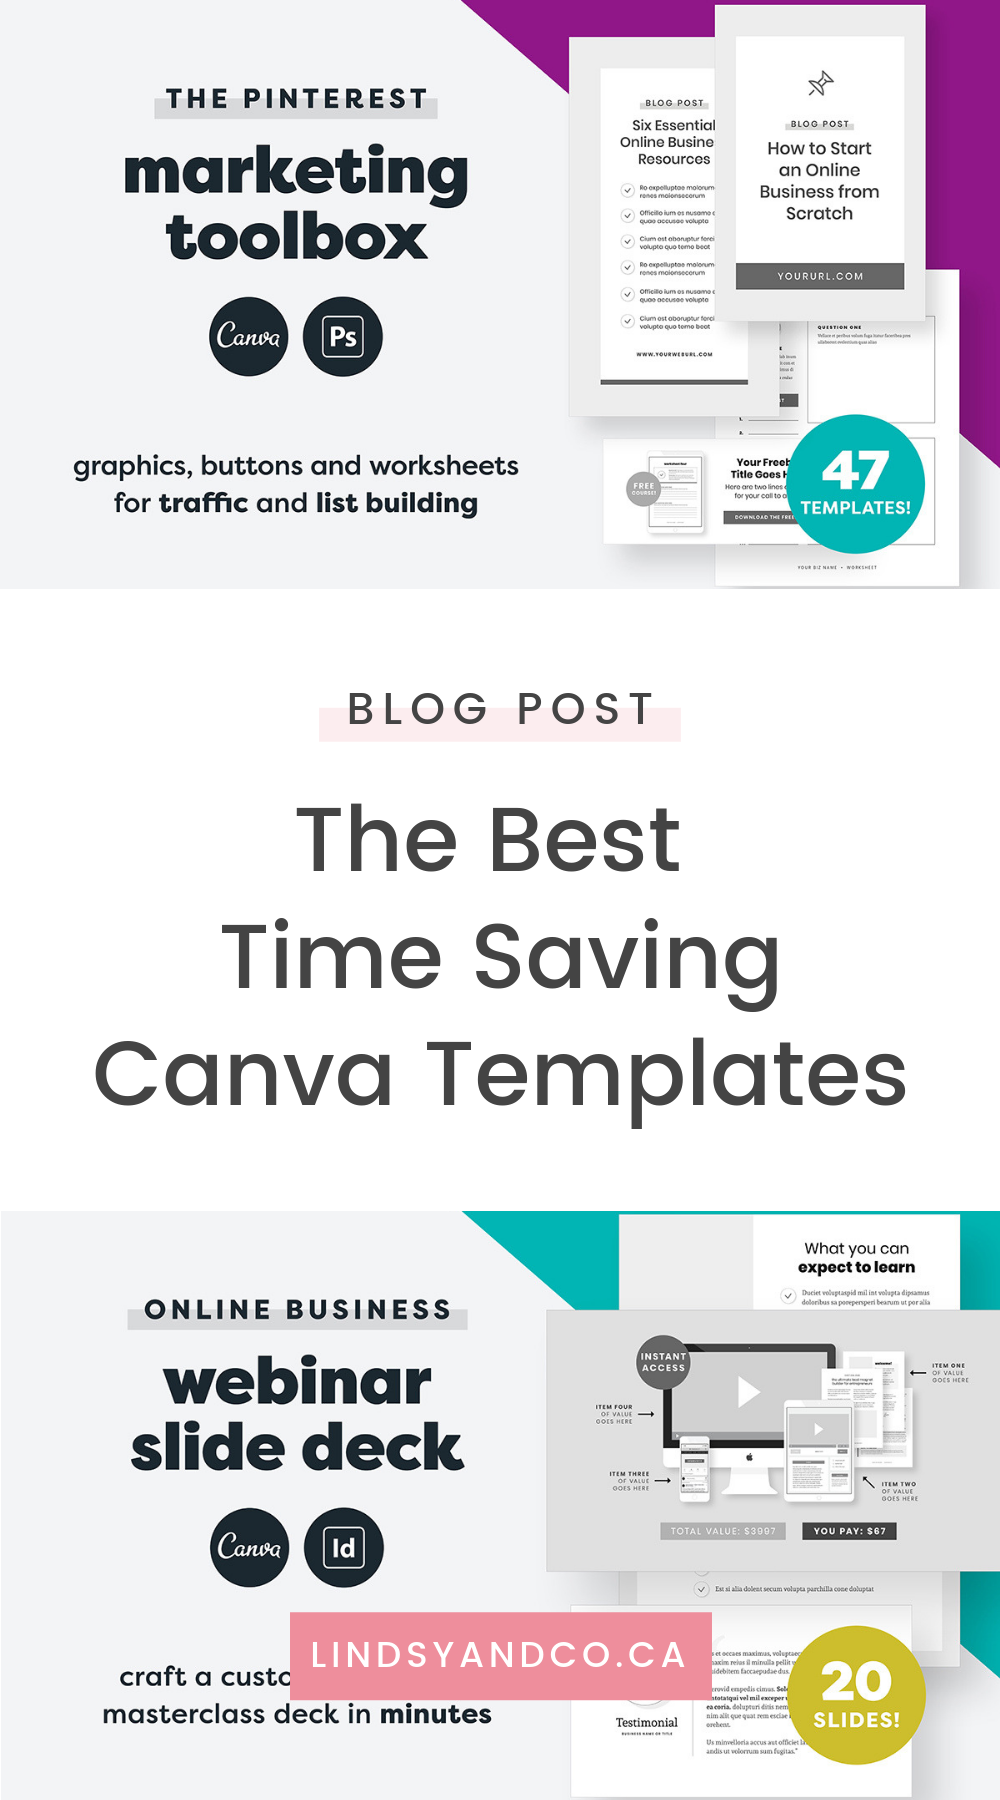 There are tons of ways to save time but I find the easiest is to purchase a few inexpensive templates for canva. These templates are so easy to customize and they look amazing too. Read more about how i use these templates to save time.